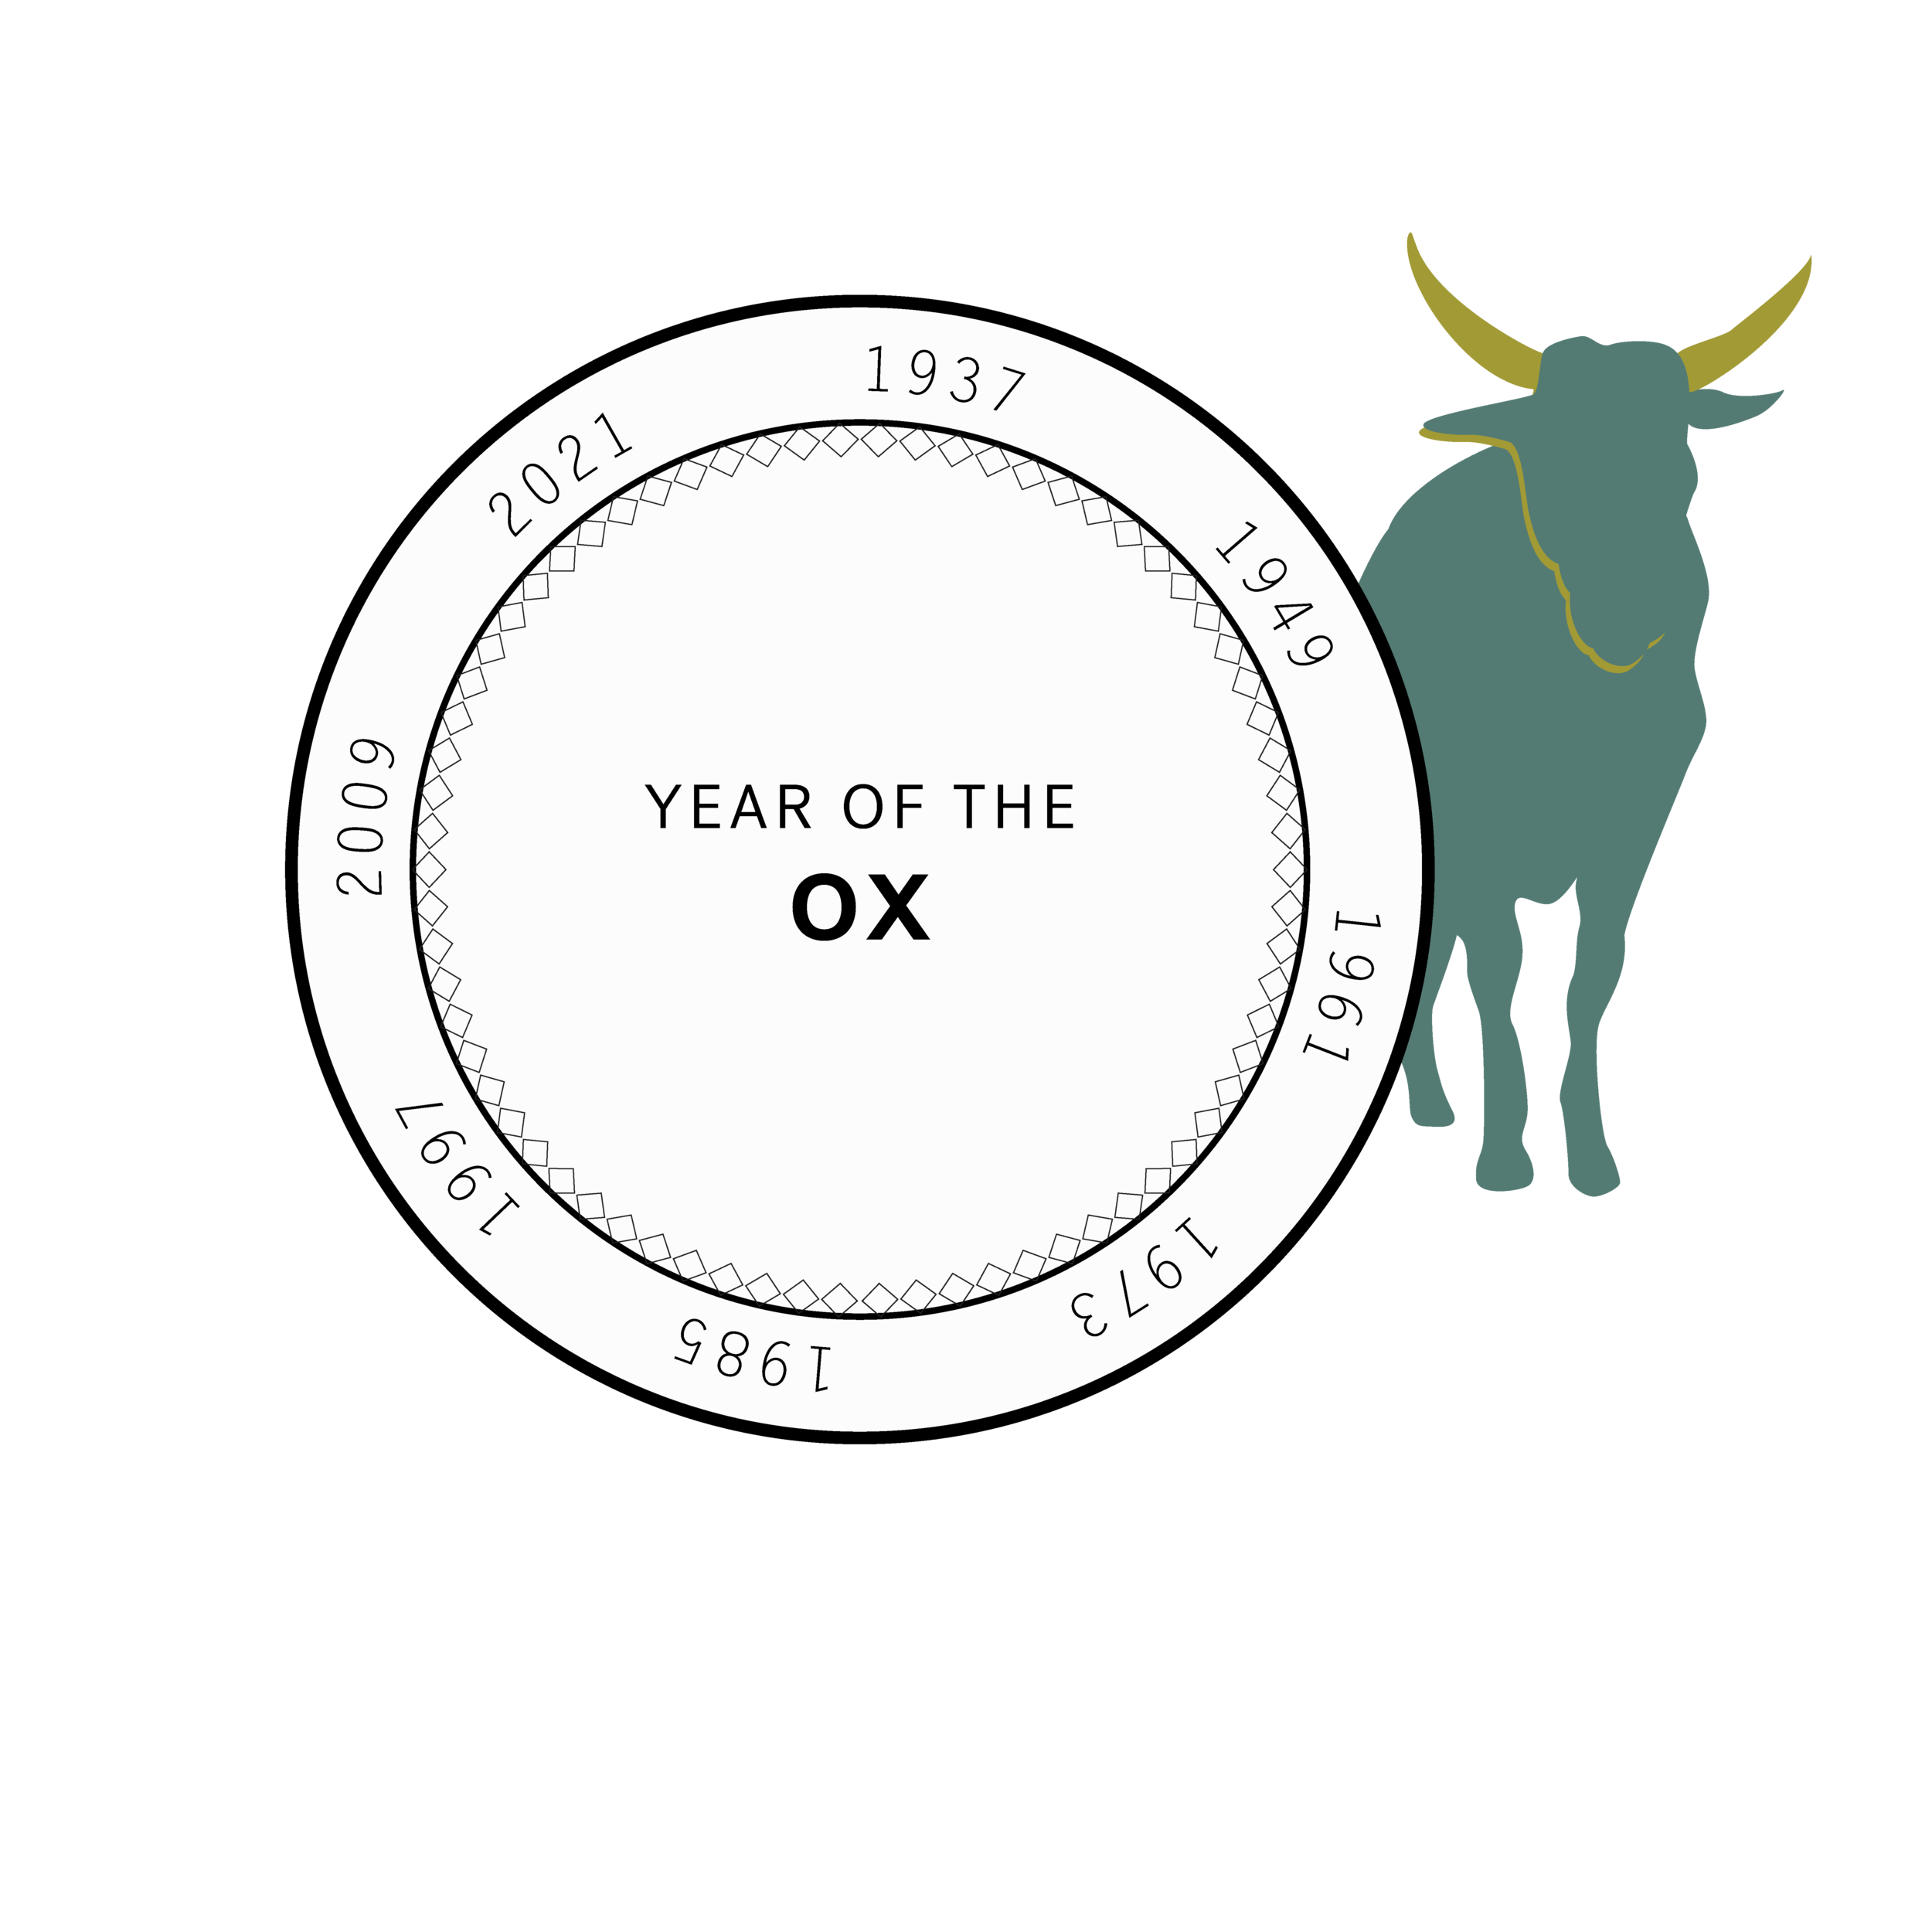 2ox.png